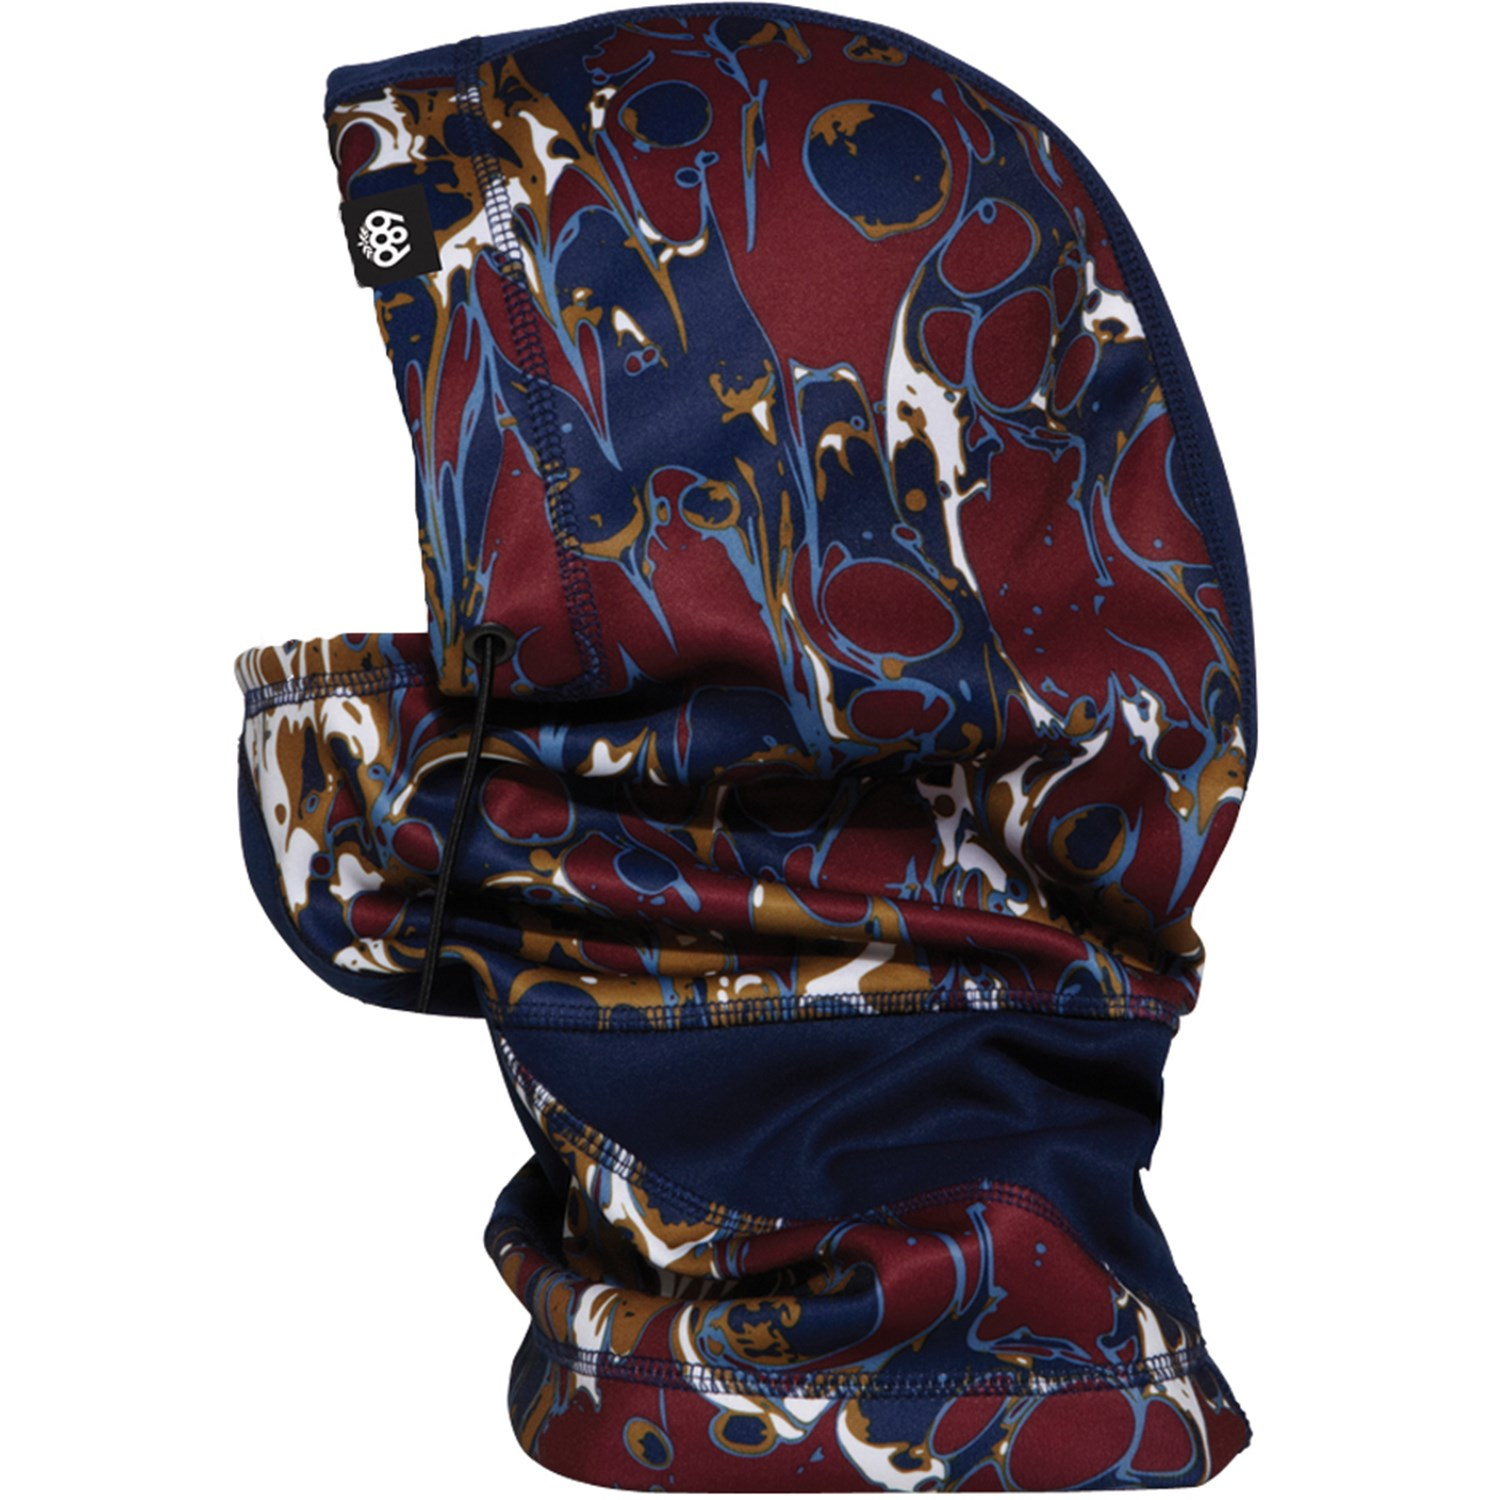 Product image of 686 Hunter Facemask Balaclava - Cosmic marble - One Size